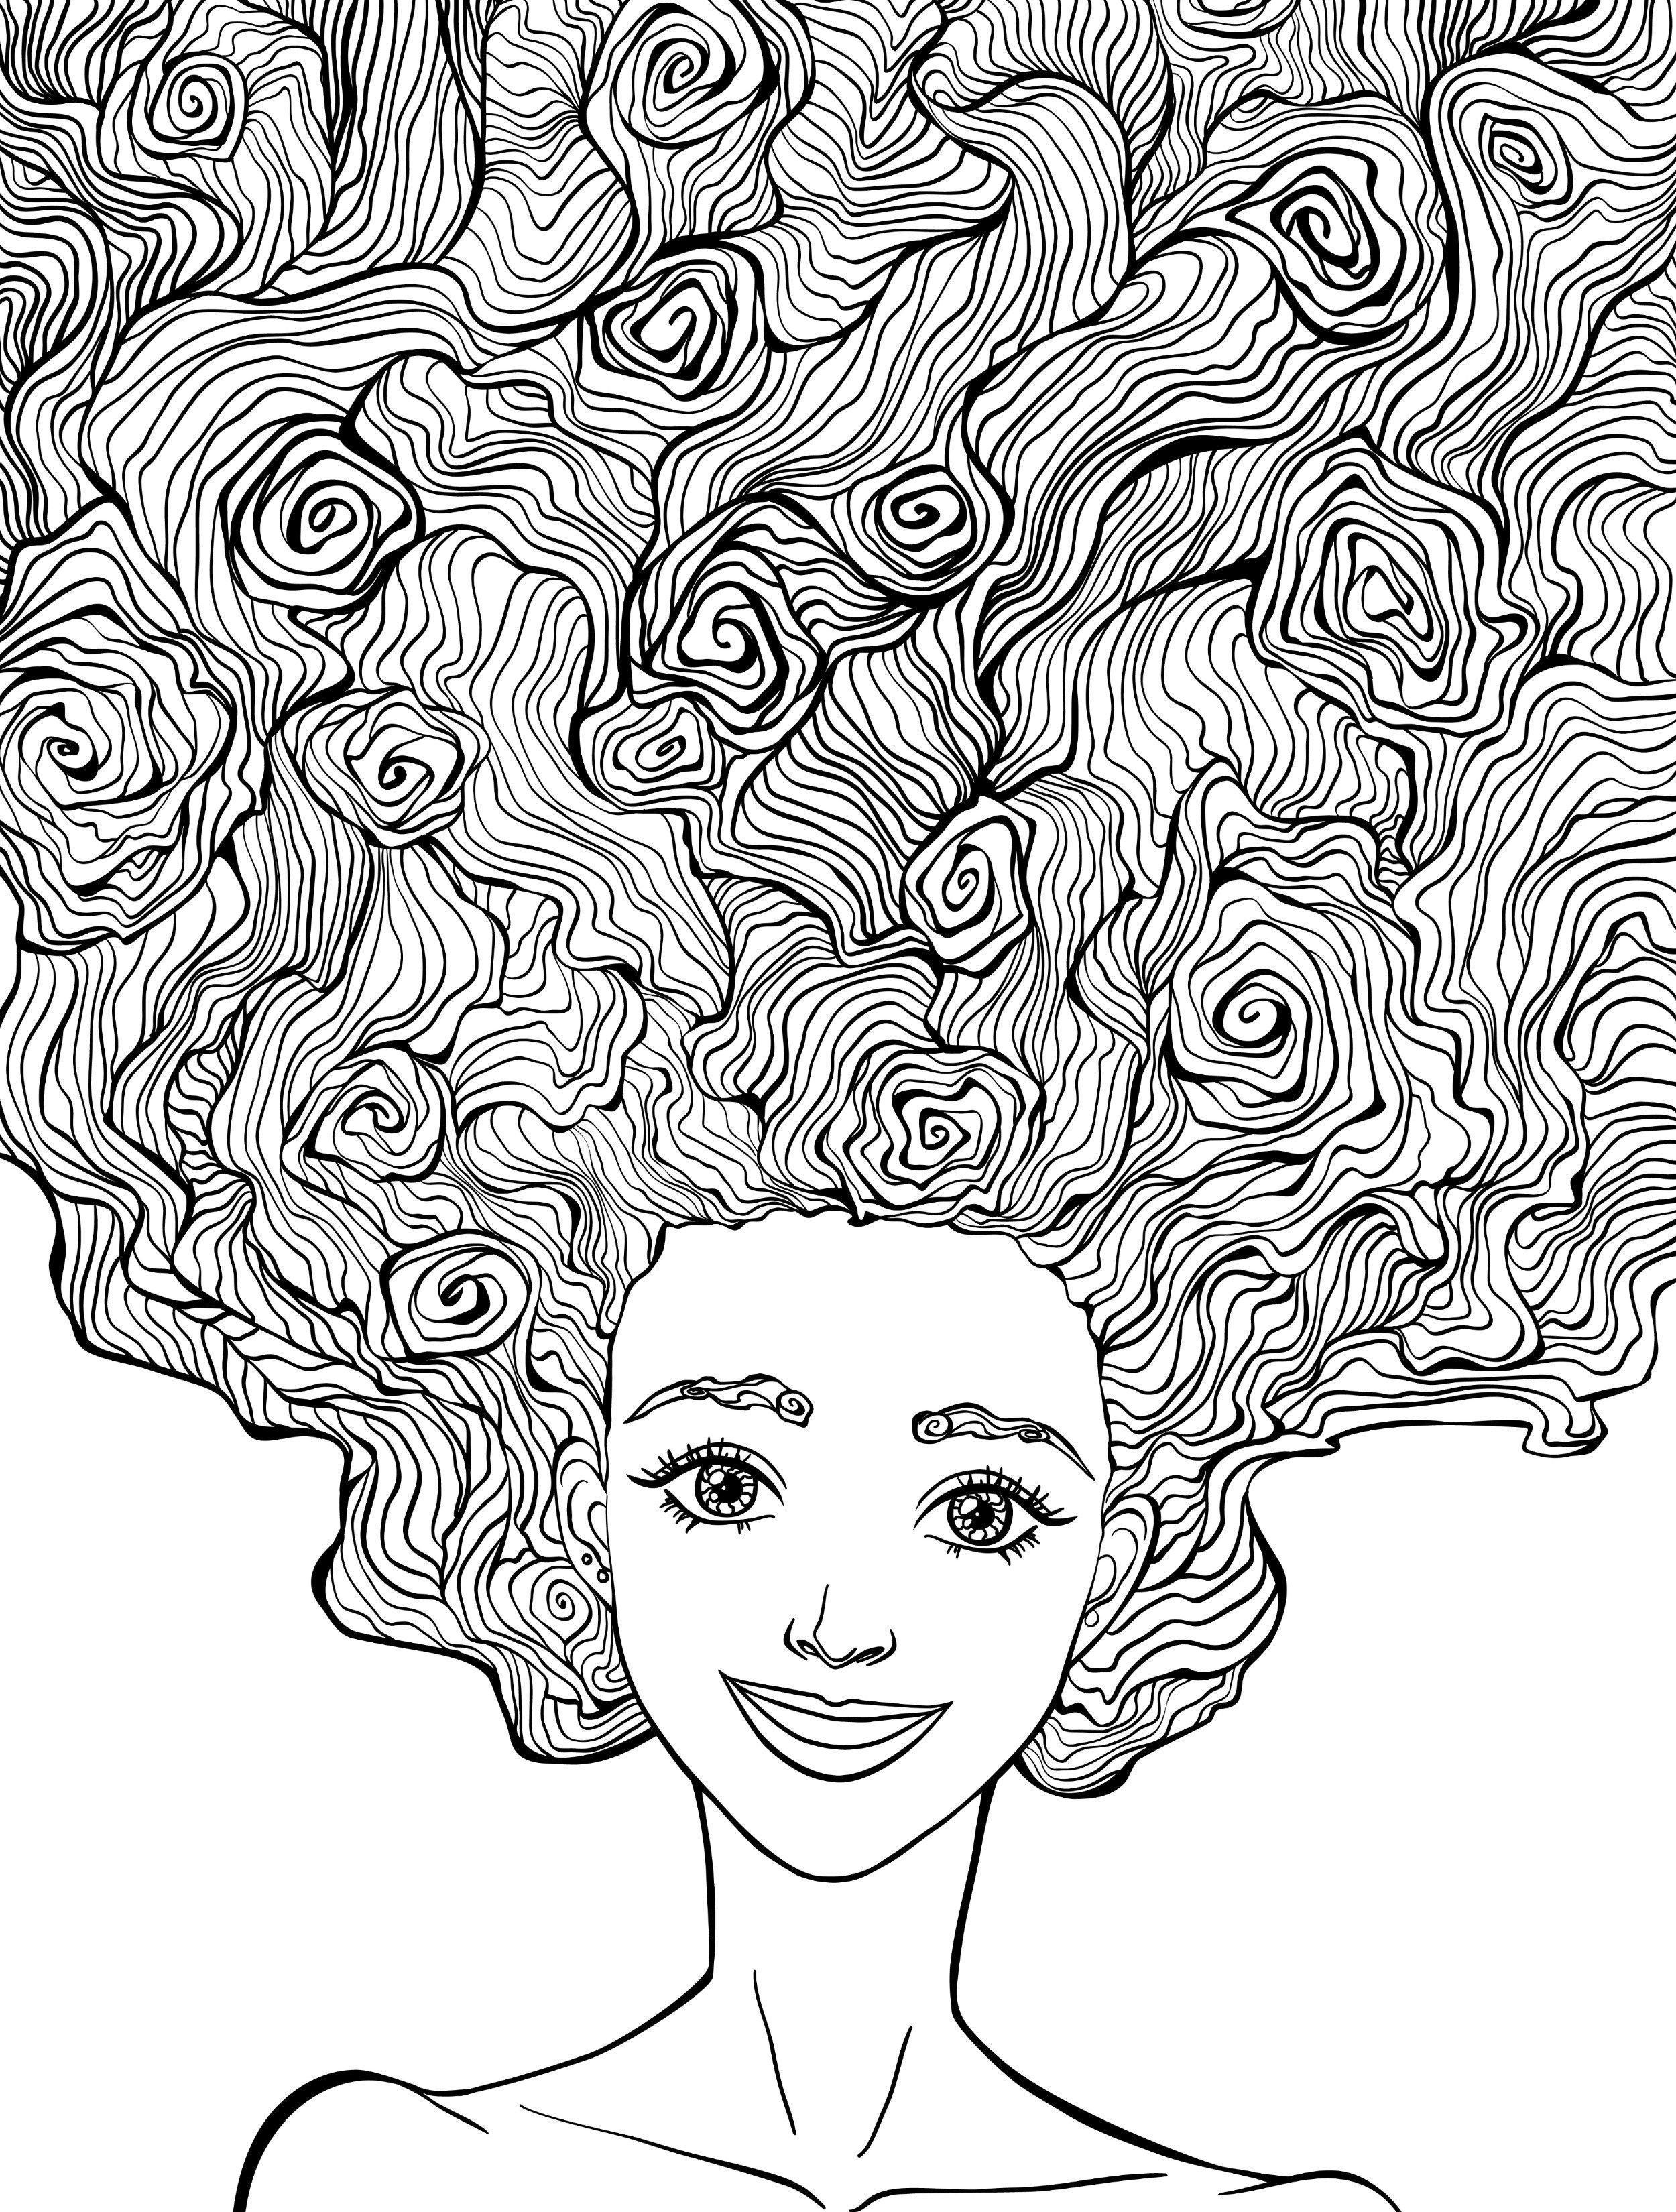 Relaxing Coloring Pages For Adults Printable